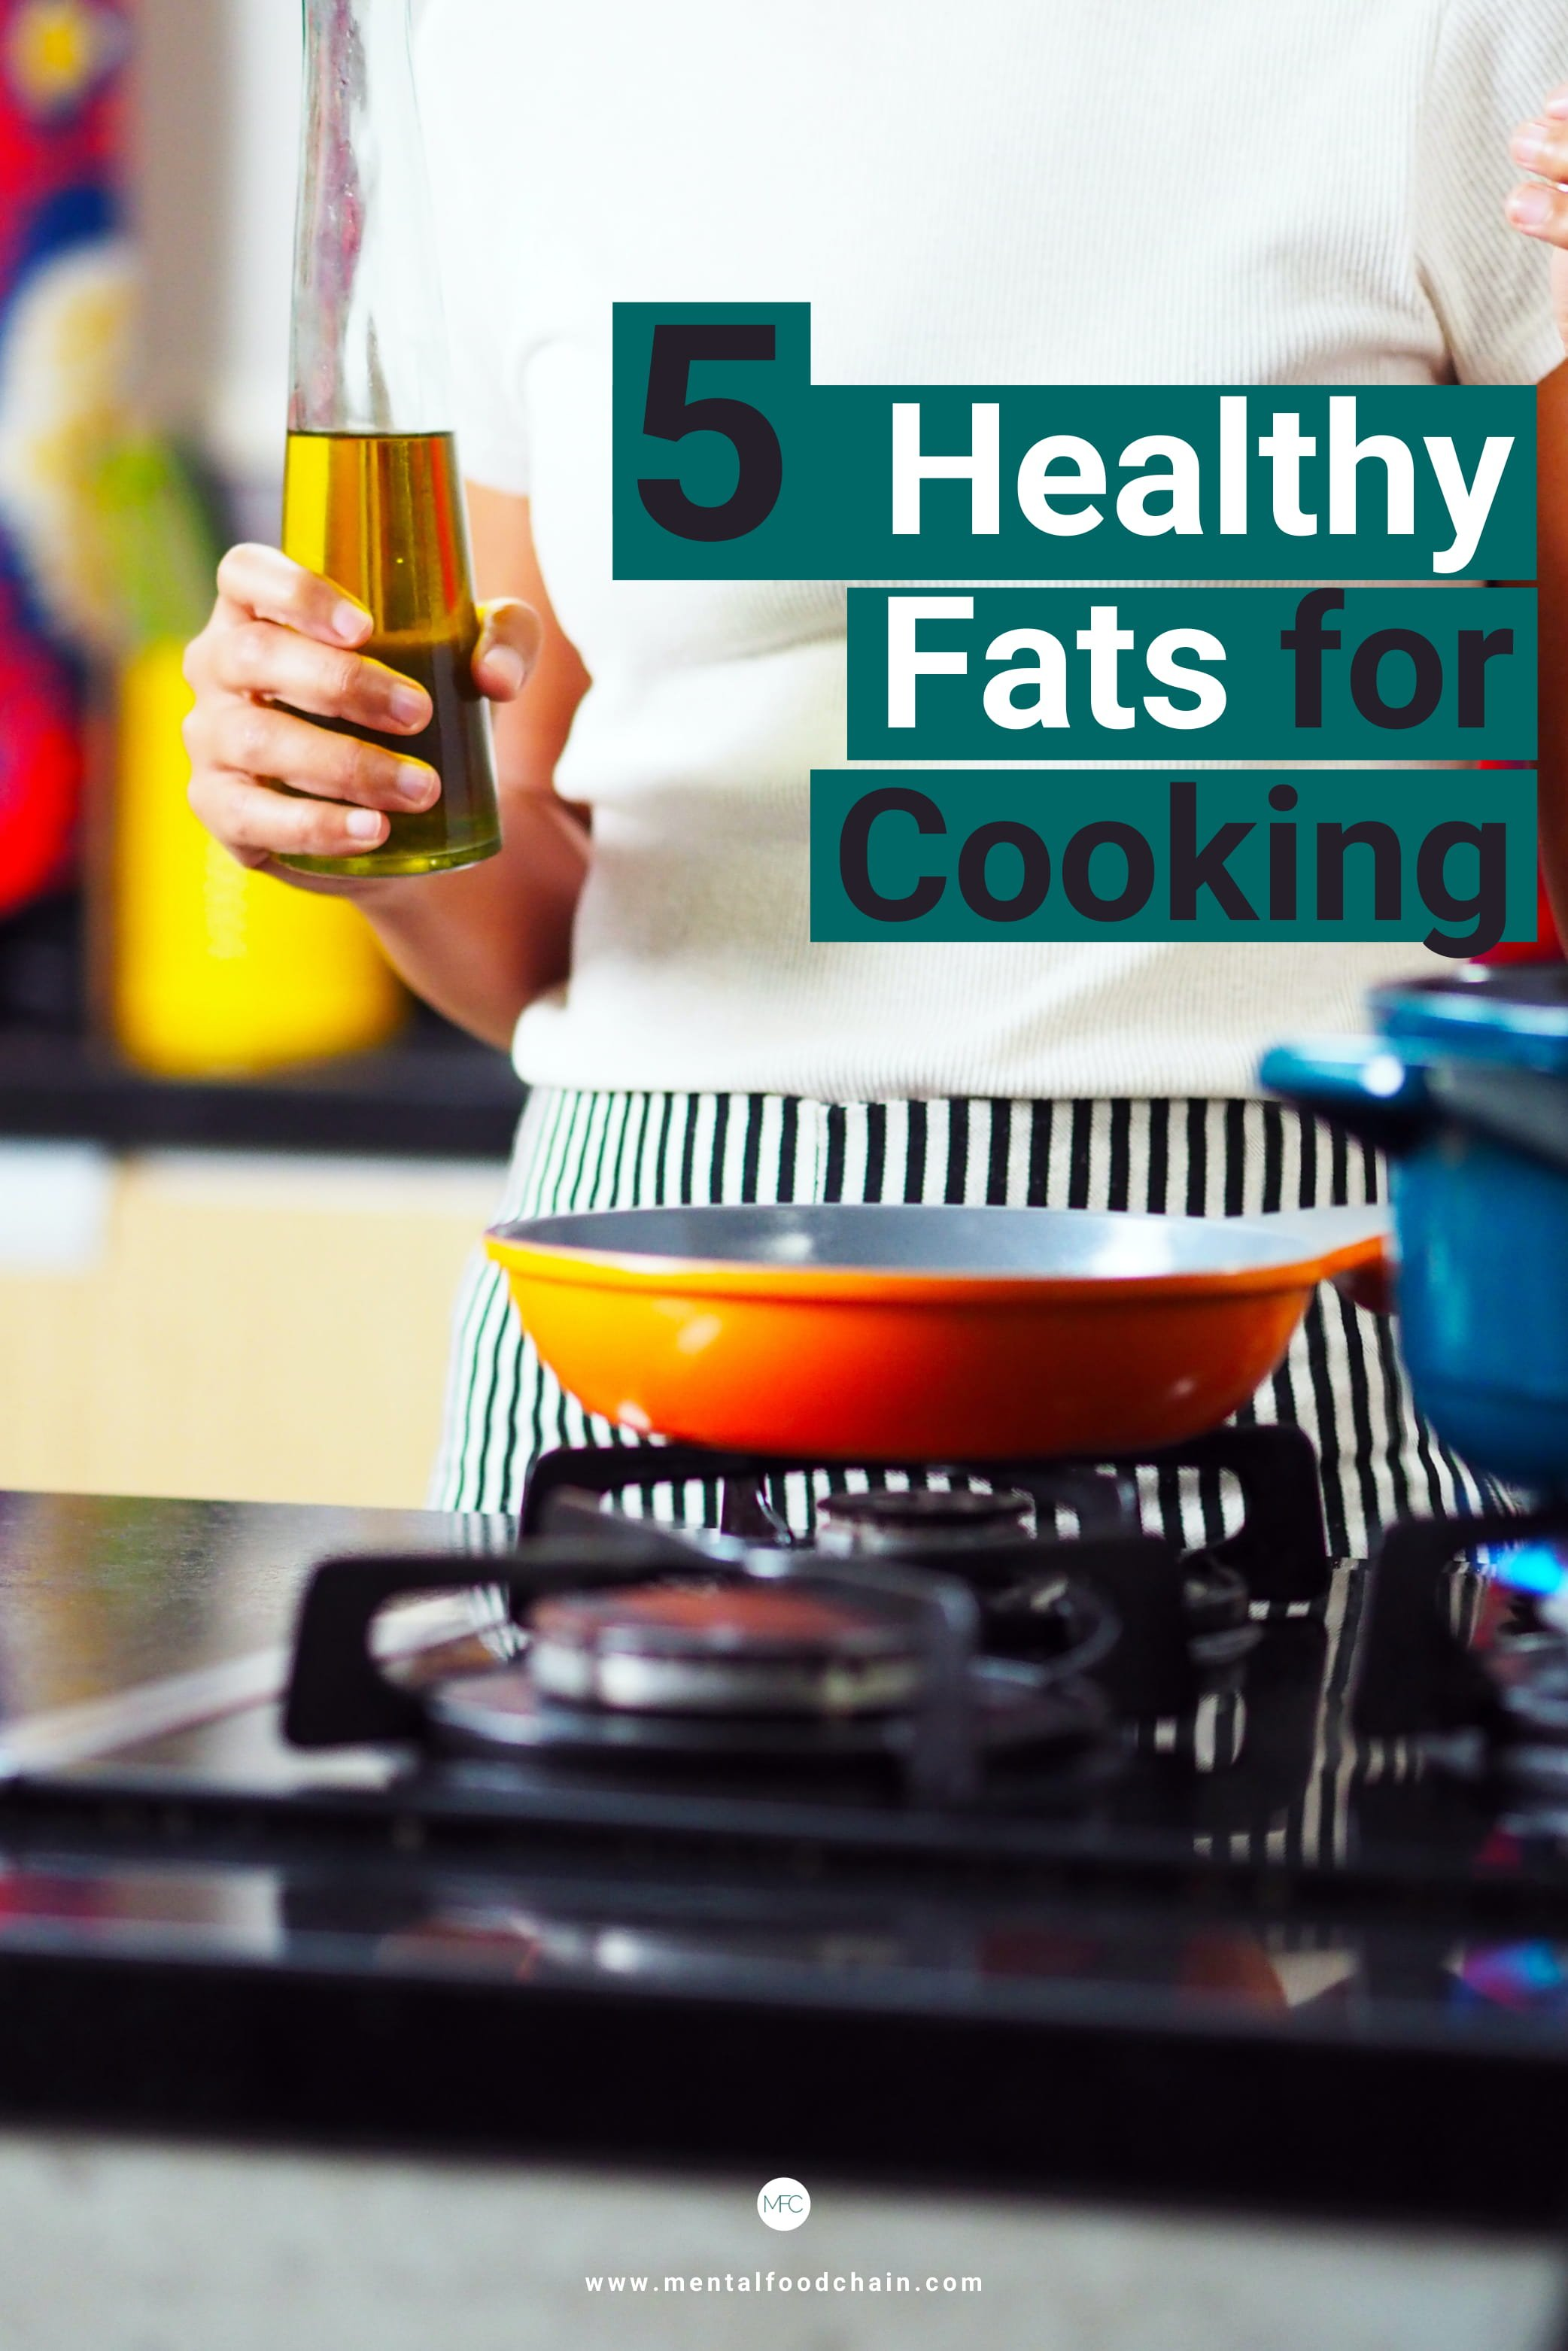 Healthy fats for cooking and frying based on science